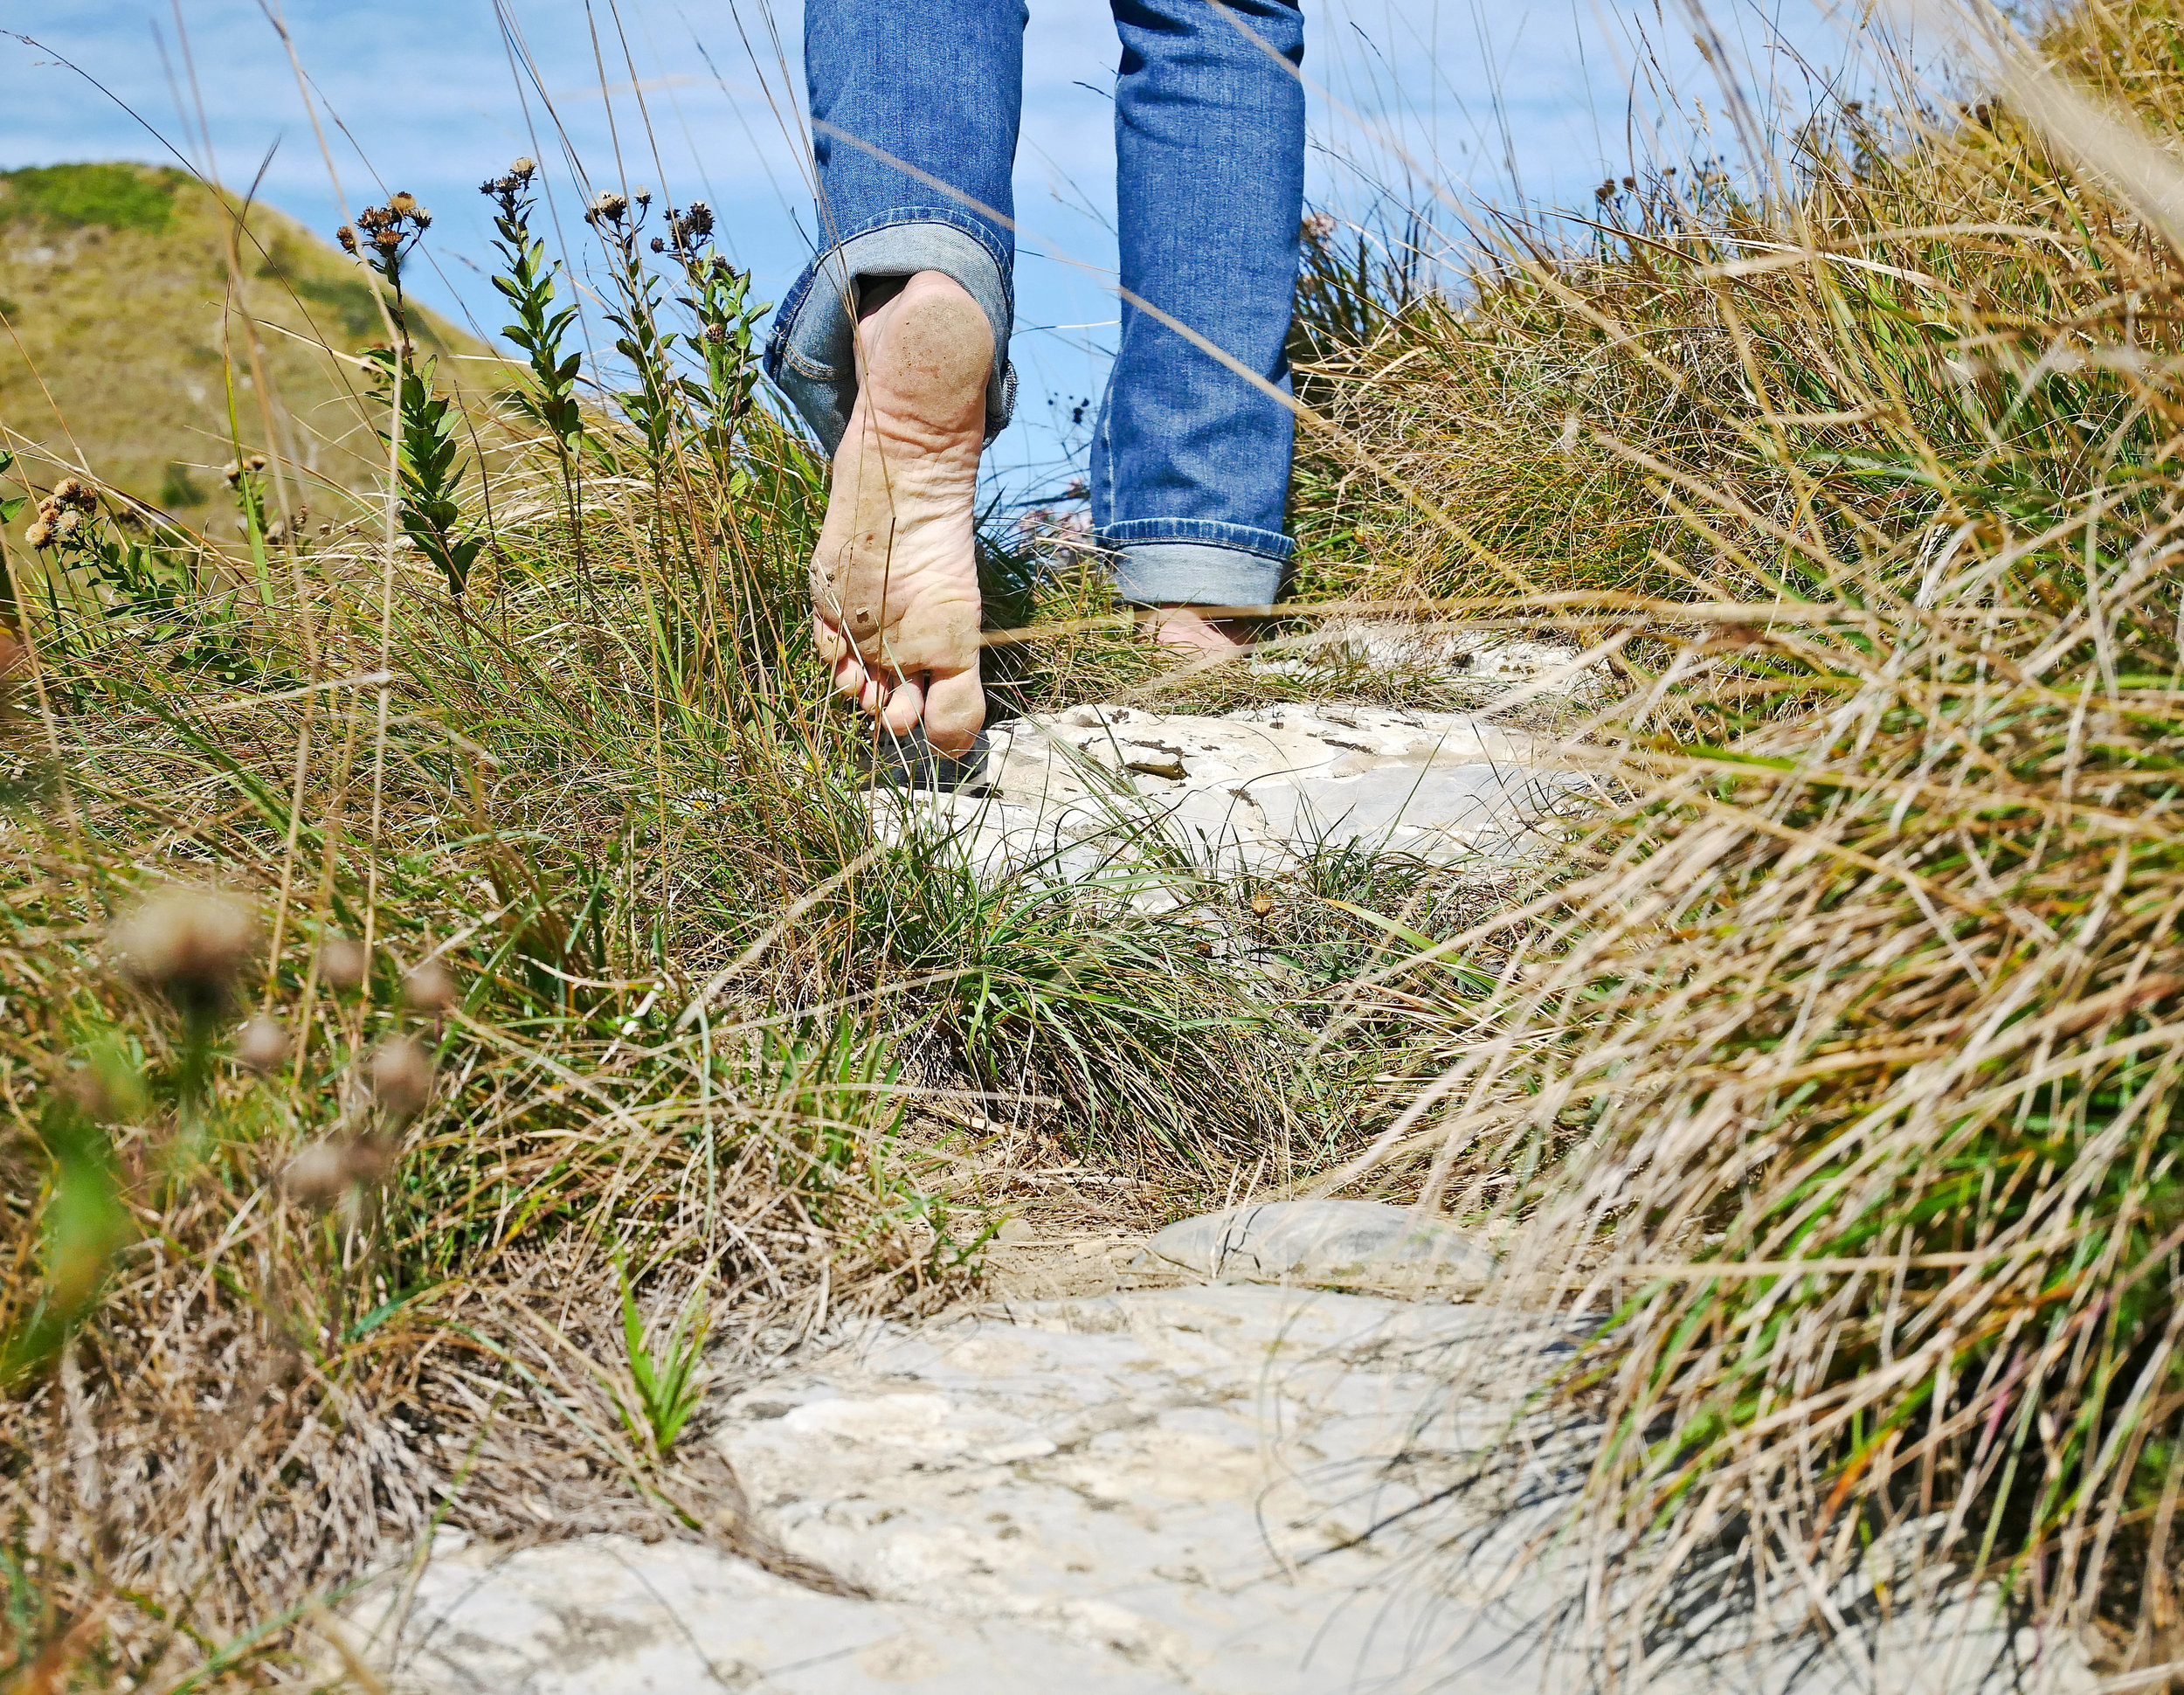 Have you tried grounding yet? -